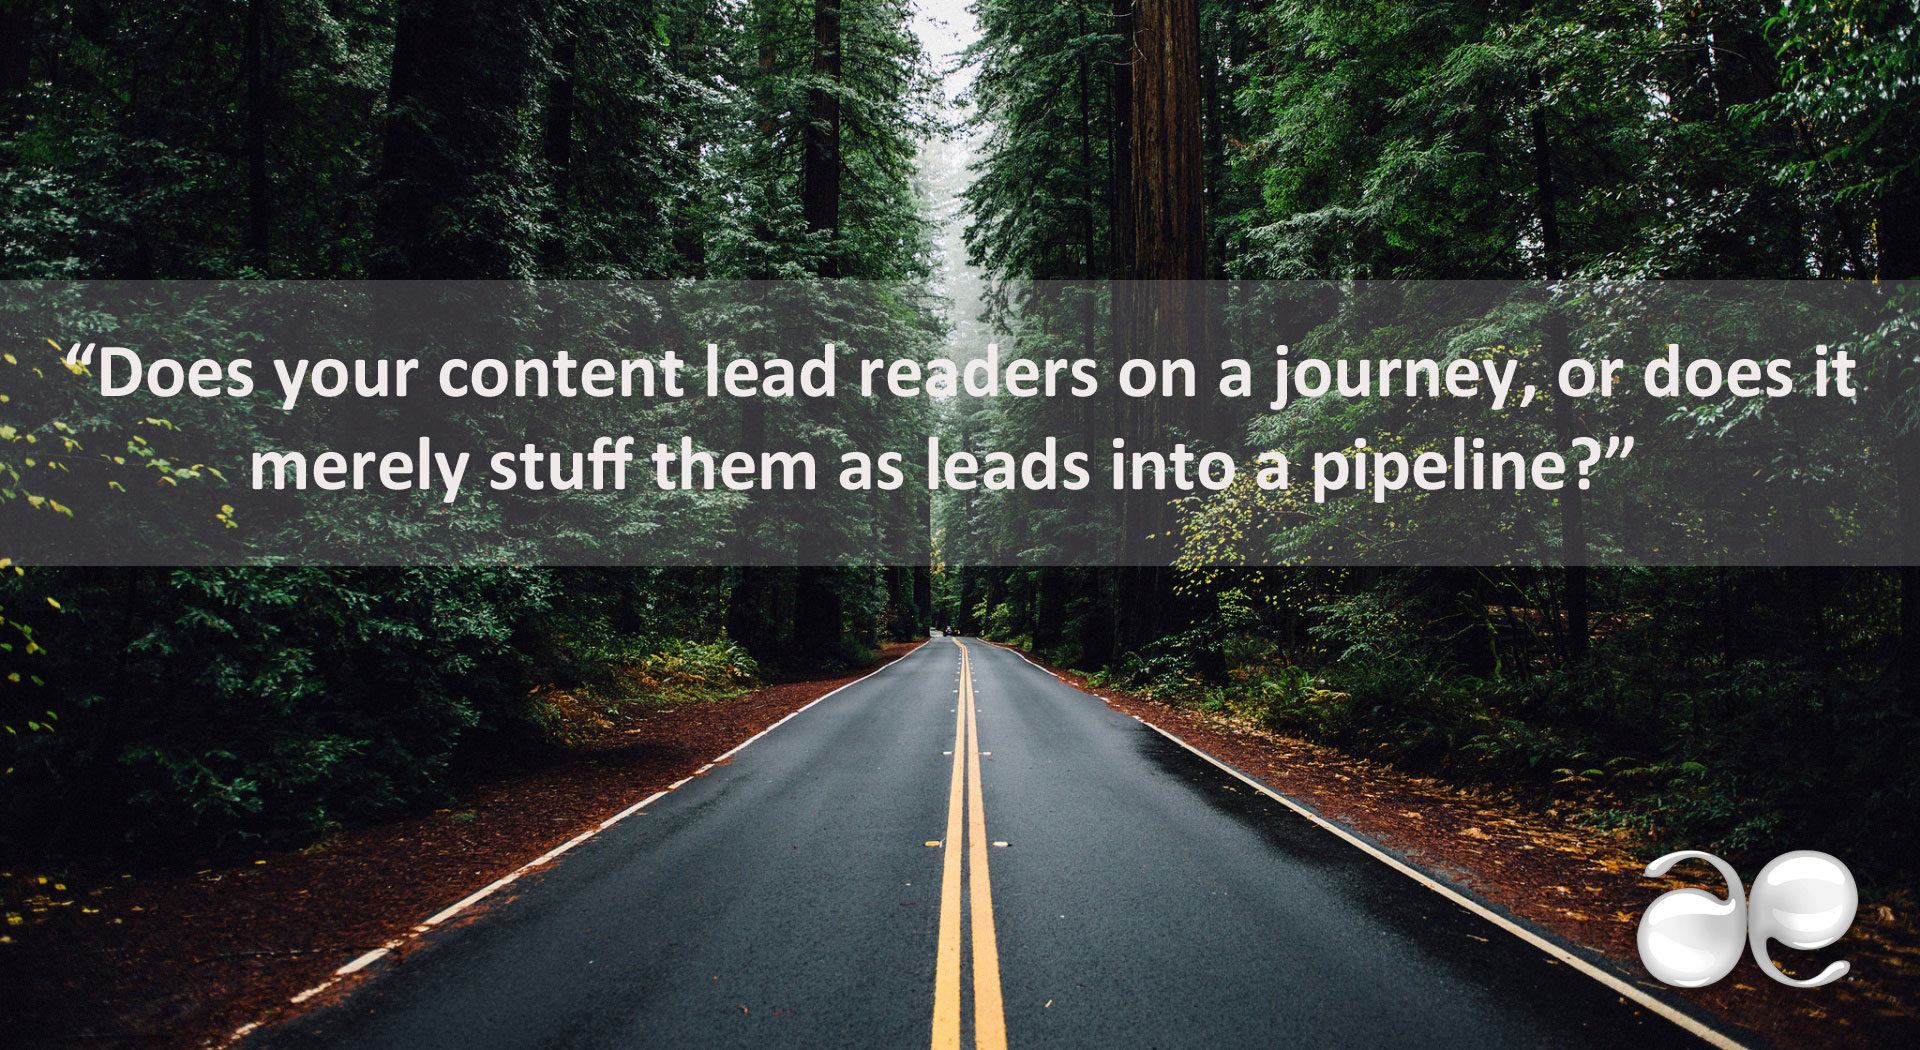 Does-your-content-lead-readers-on-a-journey-alter-ego